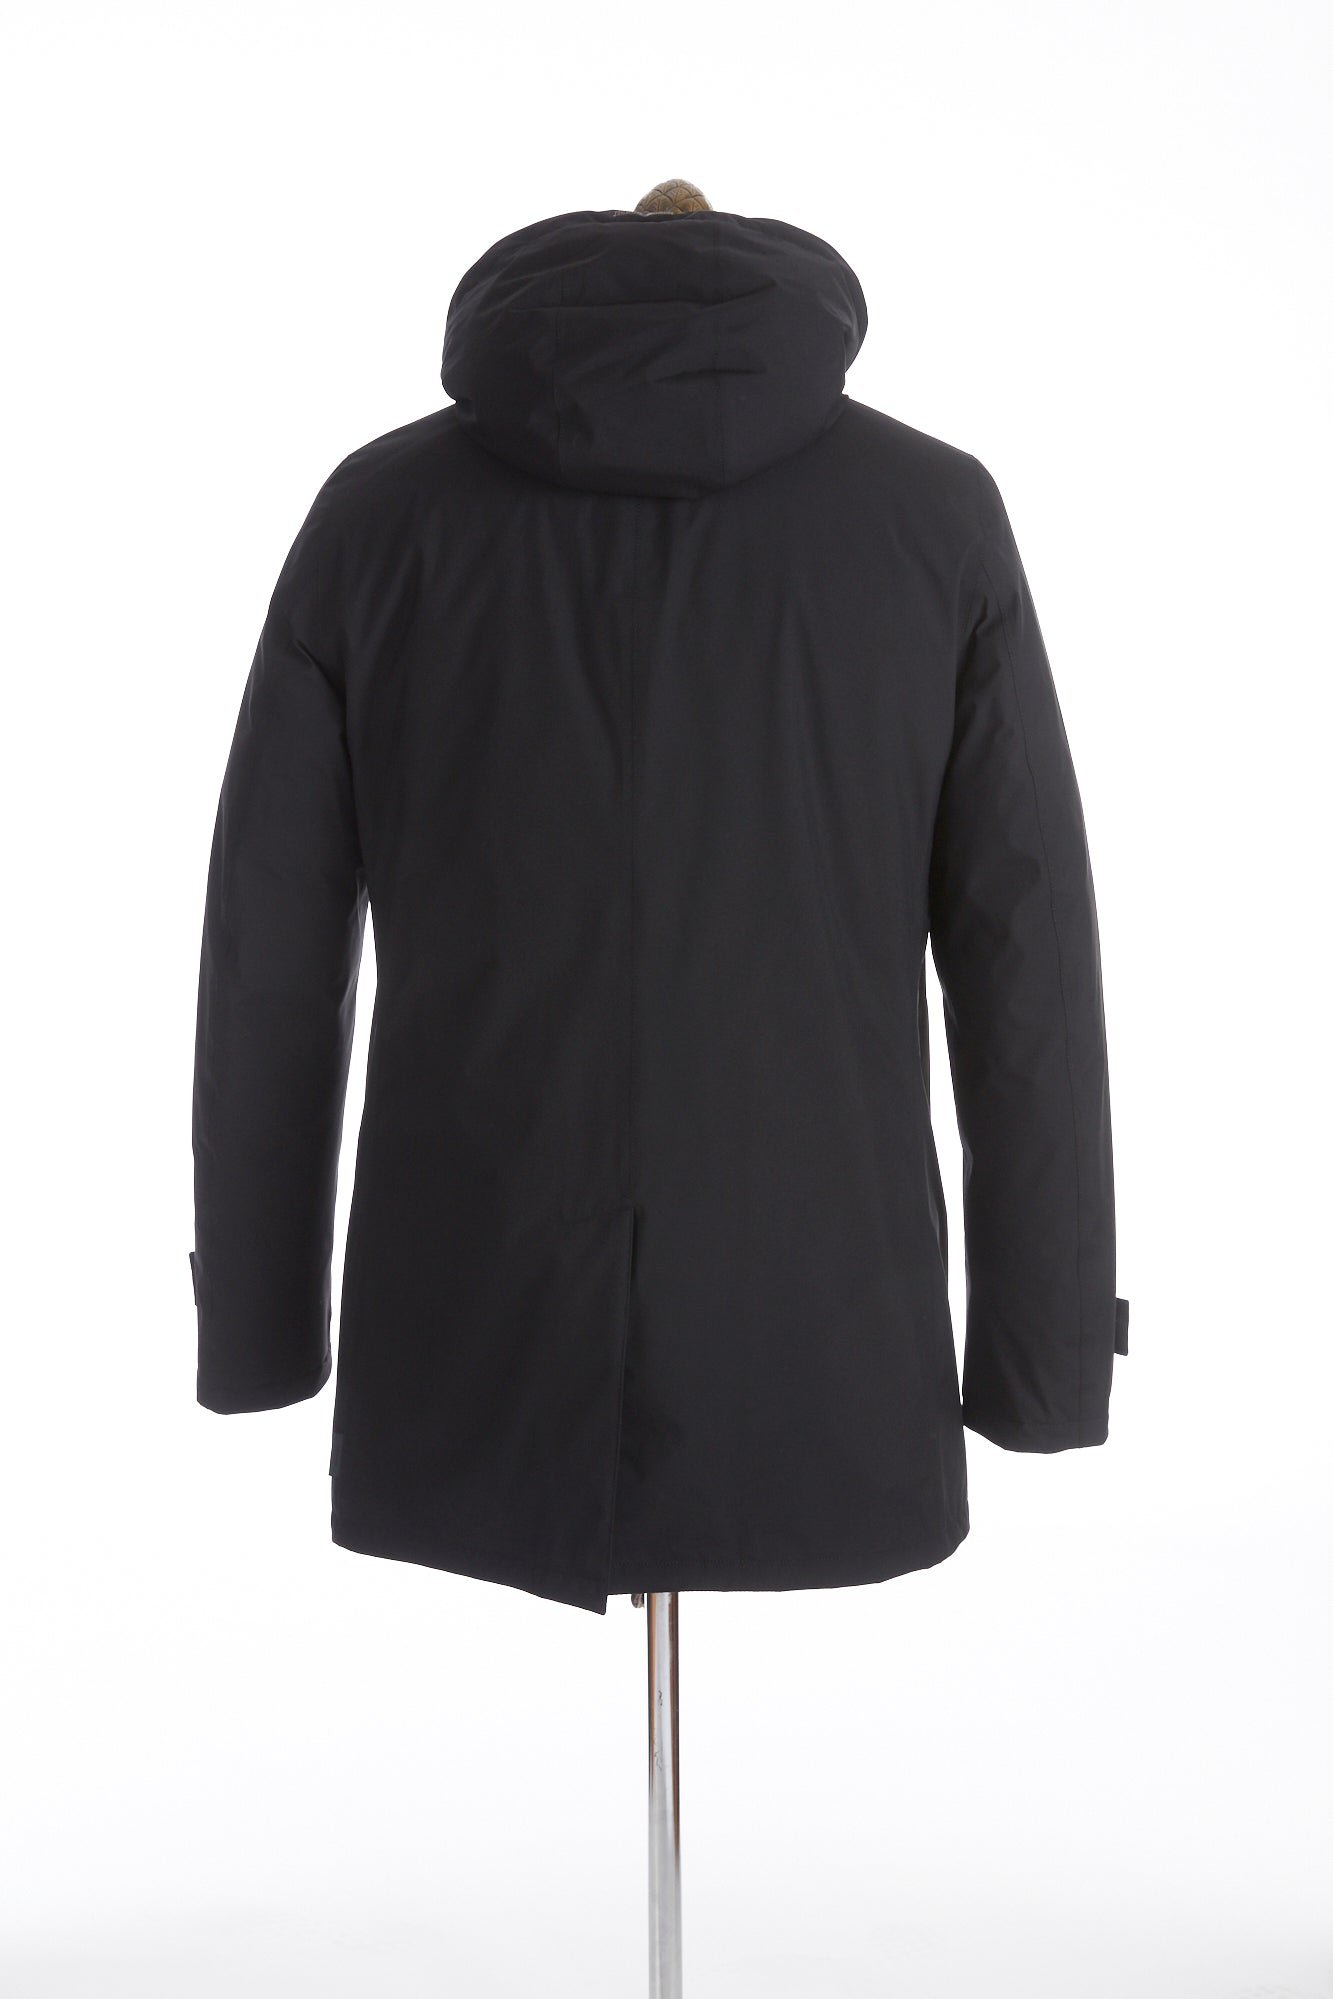 Herno Laminar Black Lined Mac Coat with Removable Hood - Outerwear - Herno - LALONDE's